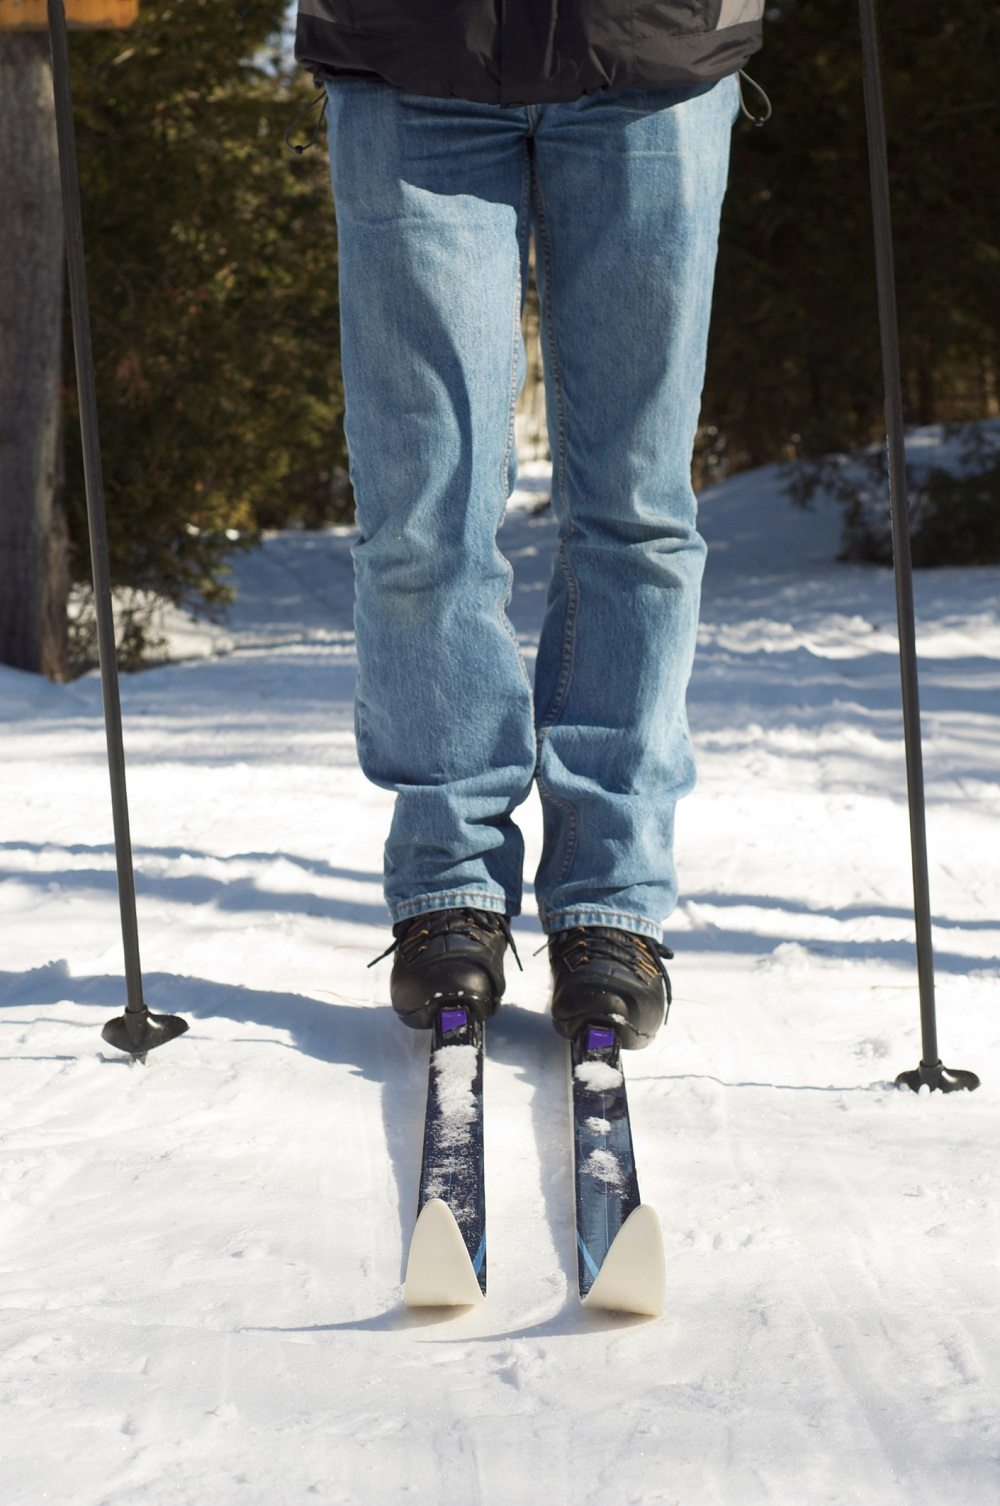 A man stands with his cross country skis